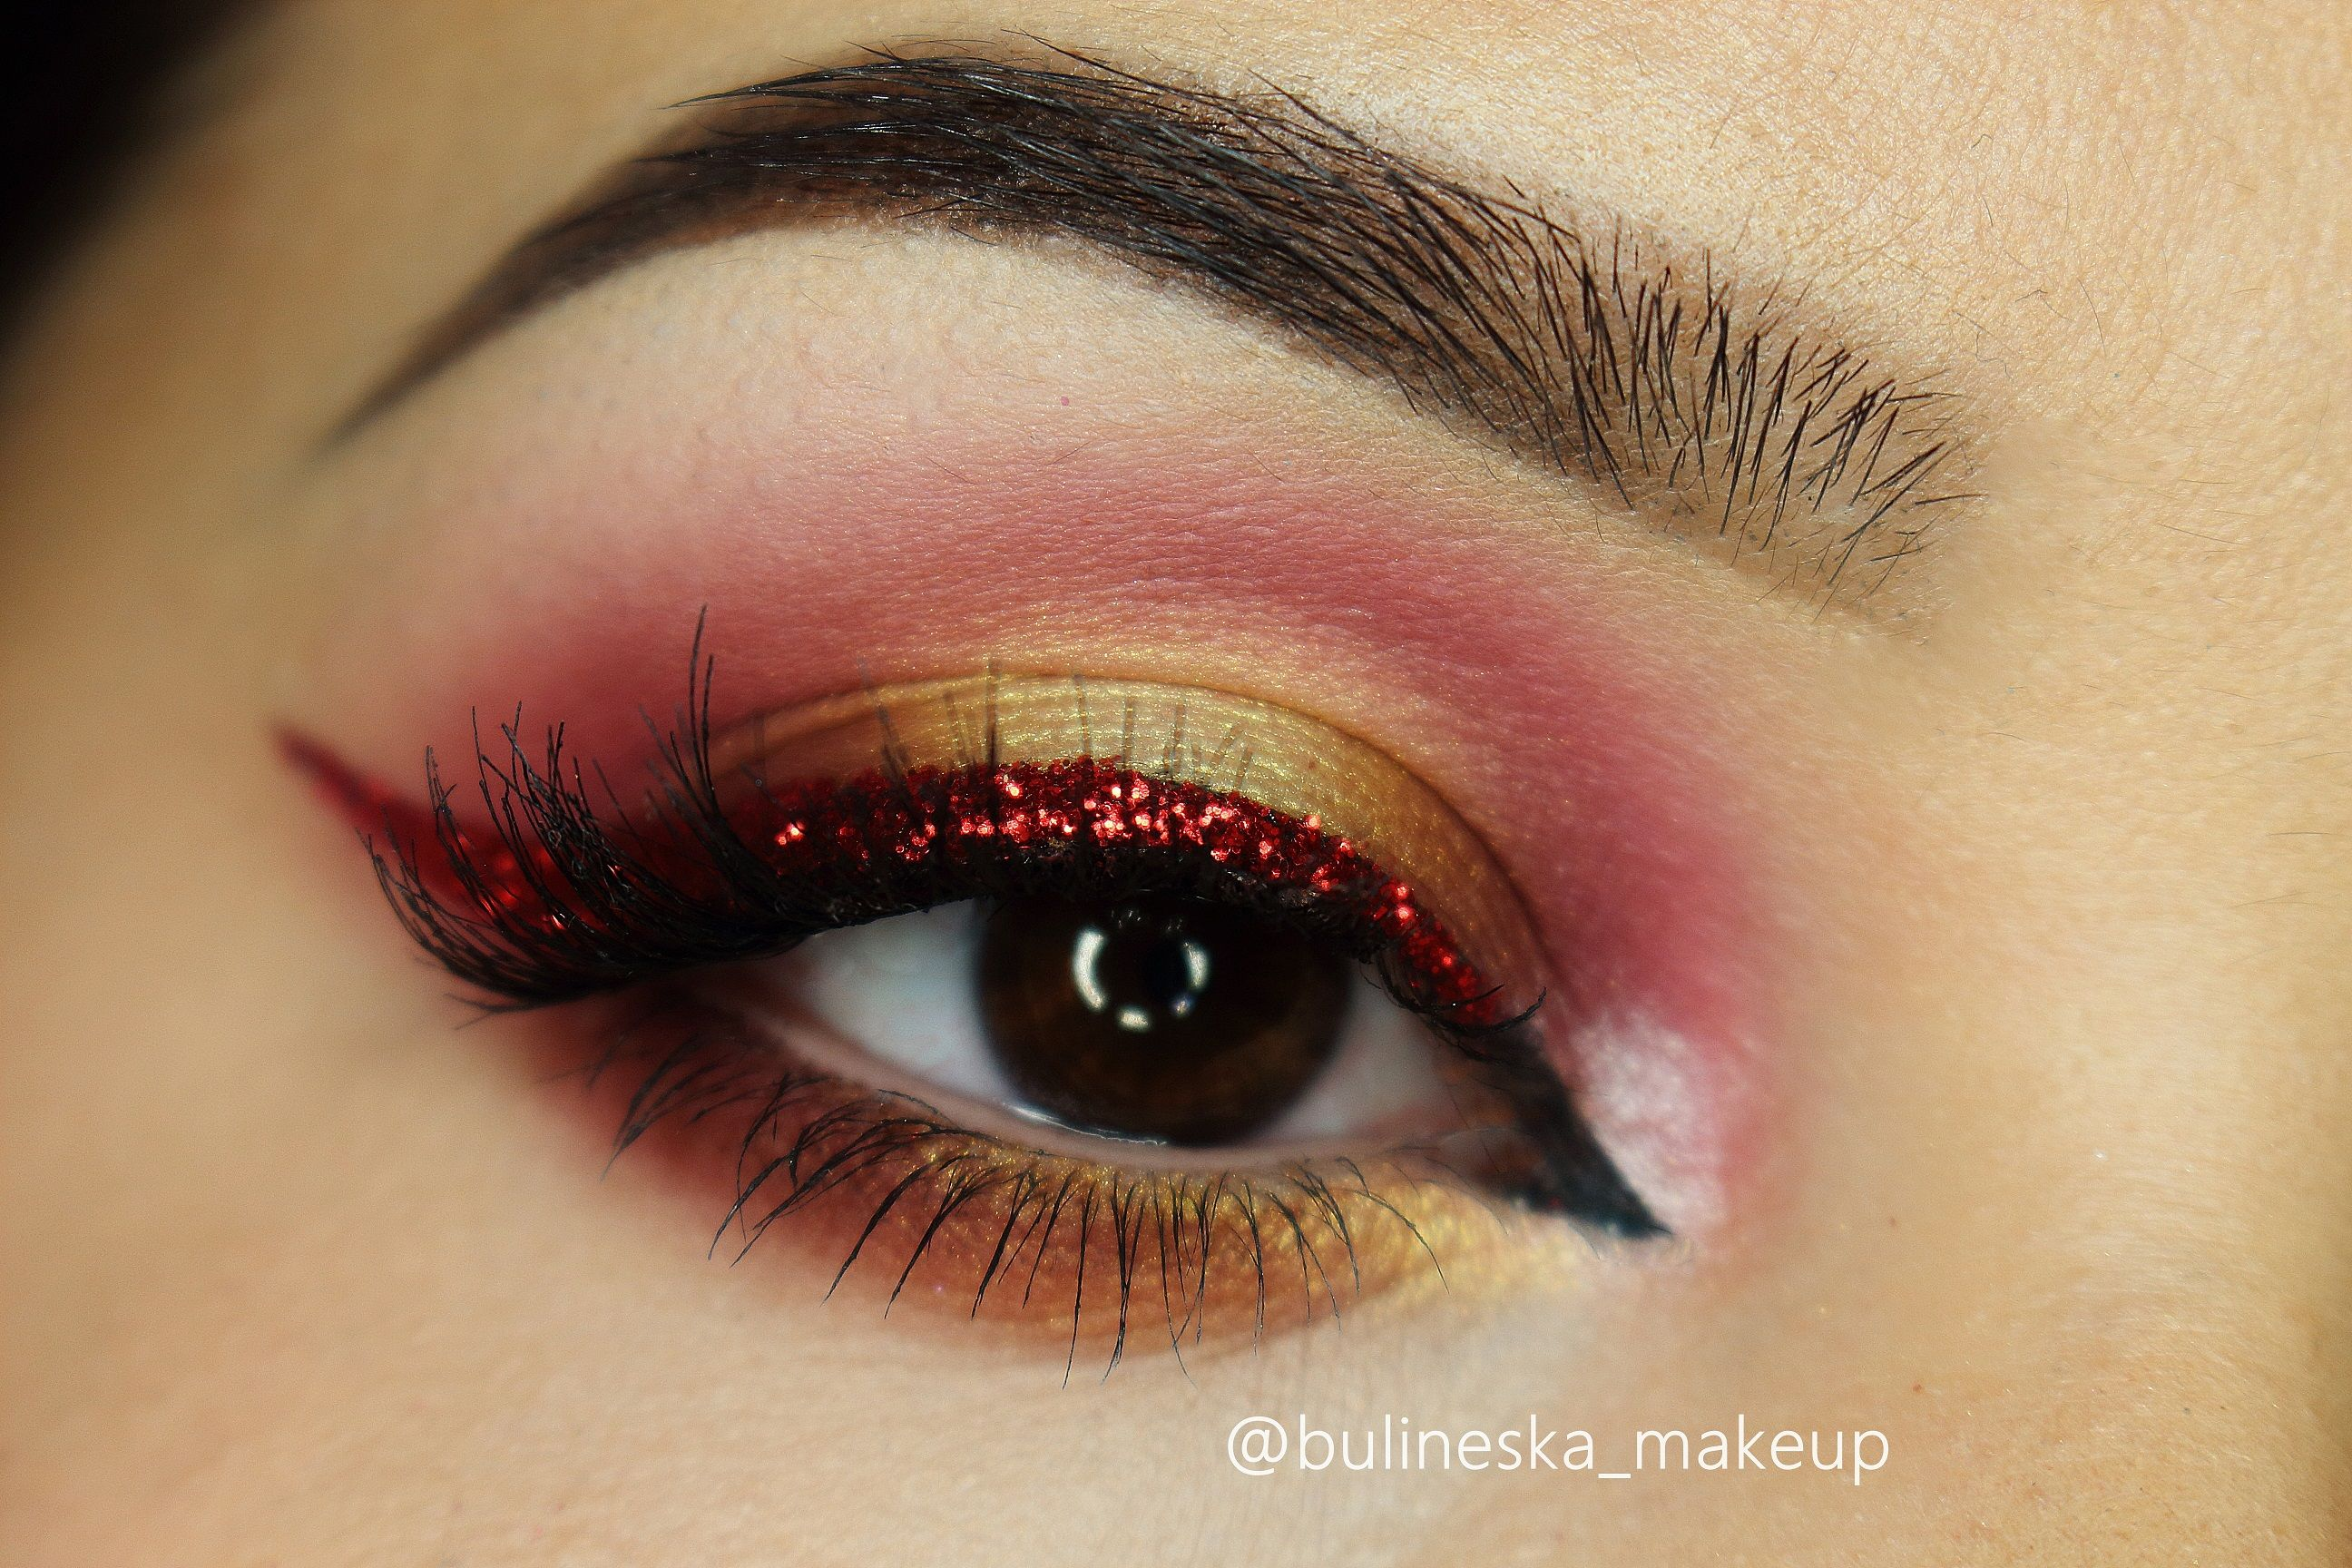 Christmas Ball Makeup Tutorial By Bulineska Makeup Featuring Makeup Geek Eyeshadows In Voltage Bitten Latte Lemon Drop Simp Ball Makeup Makeup Geek Makeup